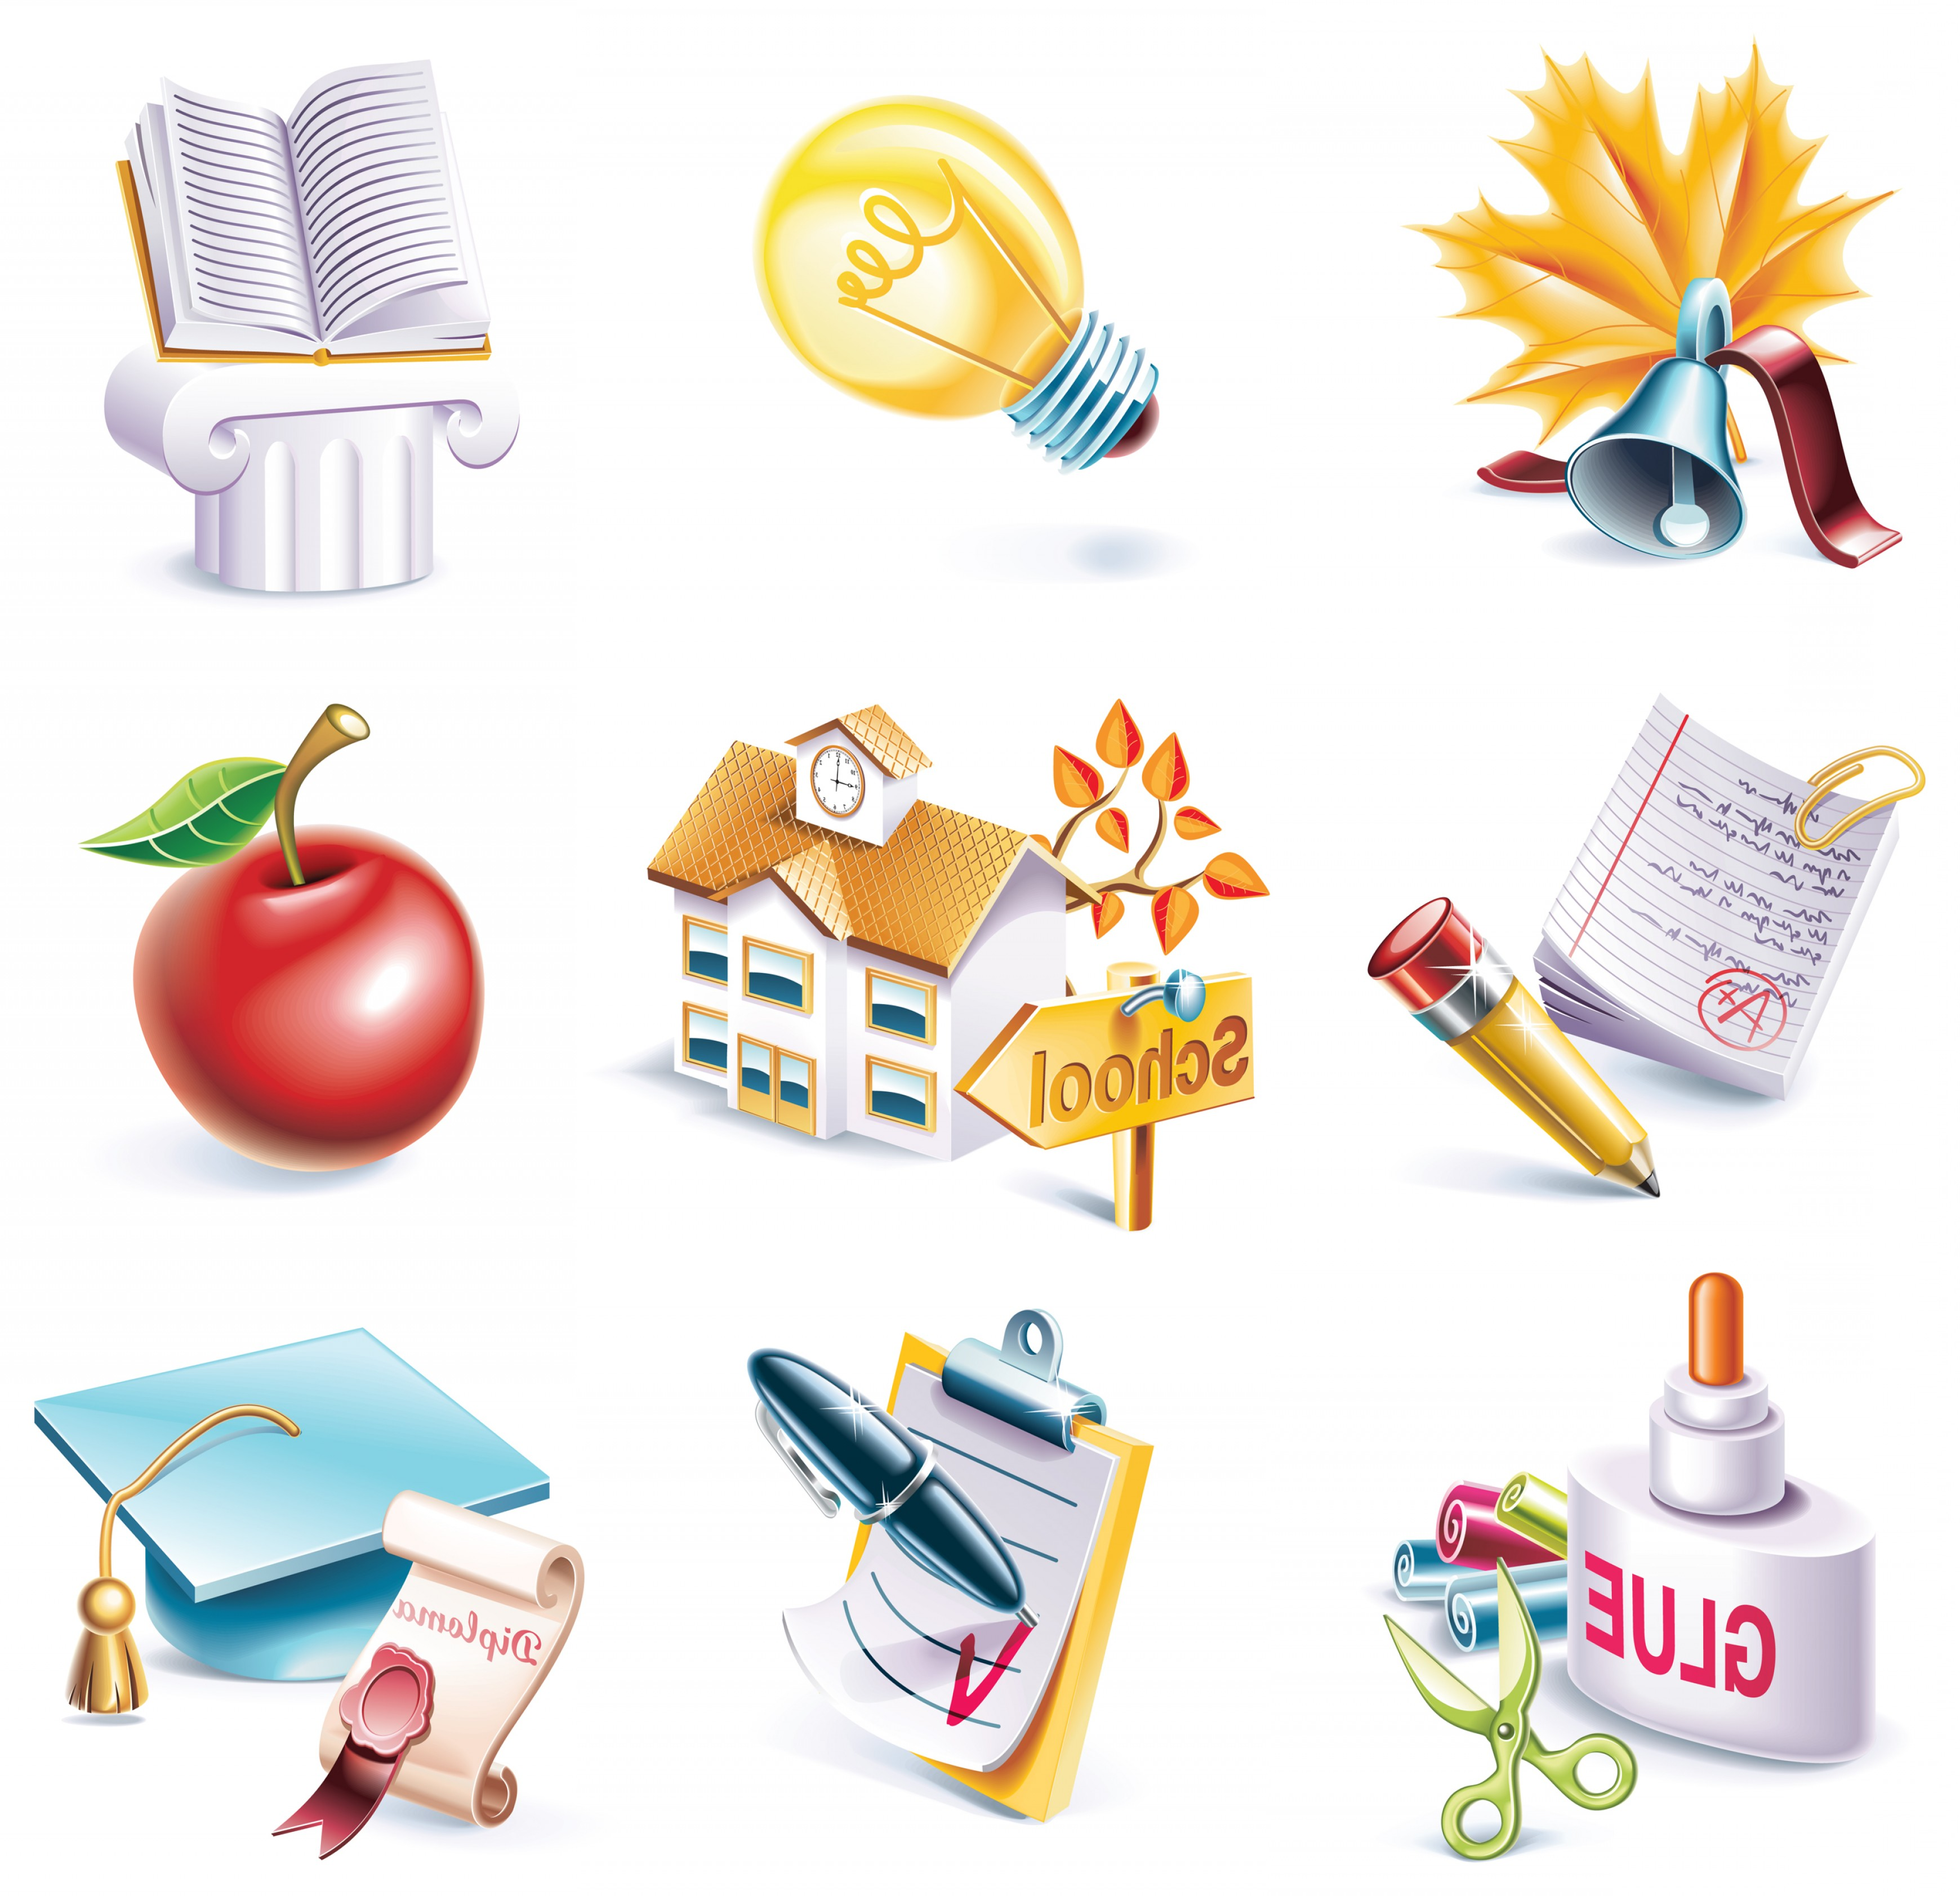 School Themed Vector: School Theme Icon Vector Material School